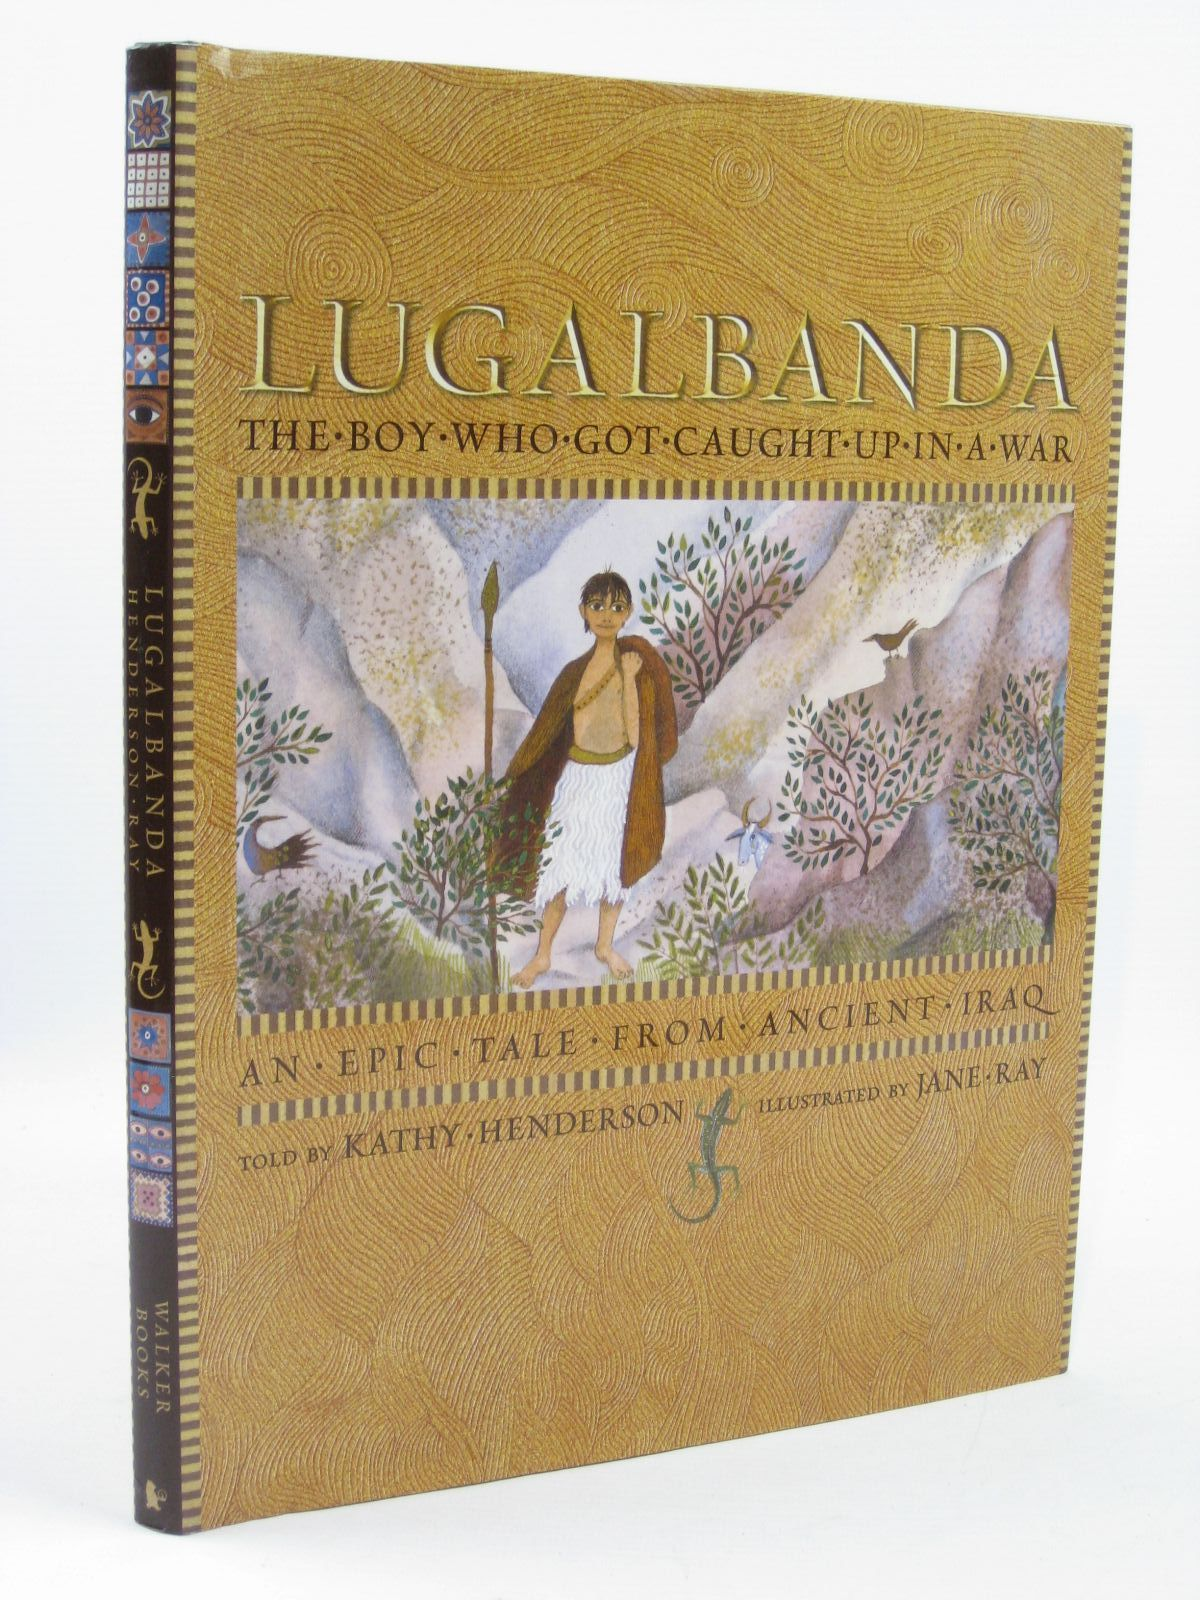 Photo of LUGALBANDA THE BOY WHO GOT CAUGHT UP IN A WAR written by Henderson, Kathy illustrated by Ray, Jane published by Walker Books Ltd (STOCK CODE: 1507008)  for sale by Stella & Rose's Books